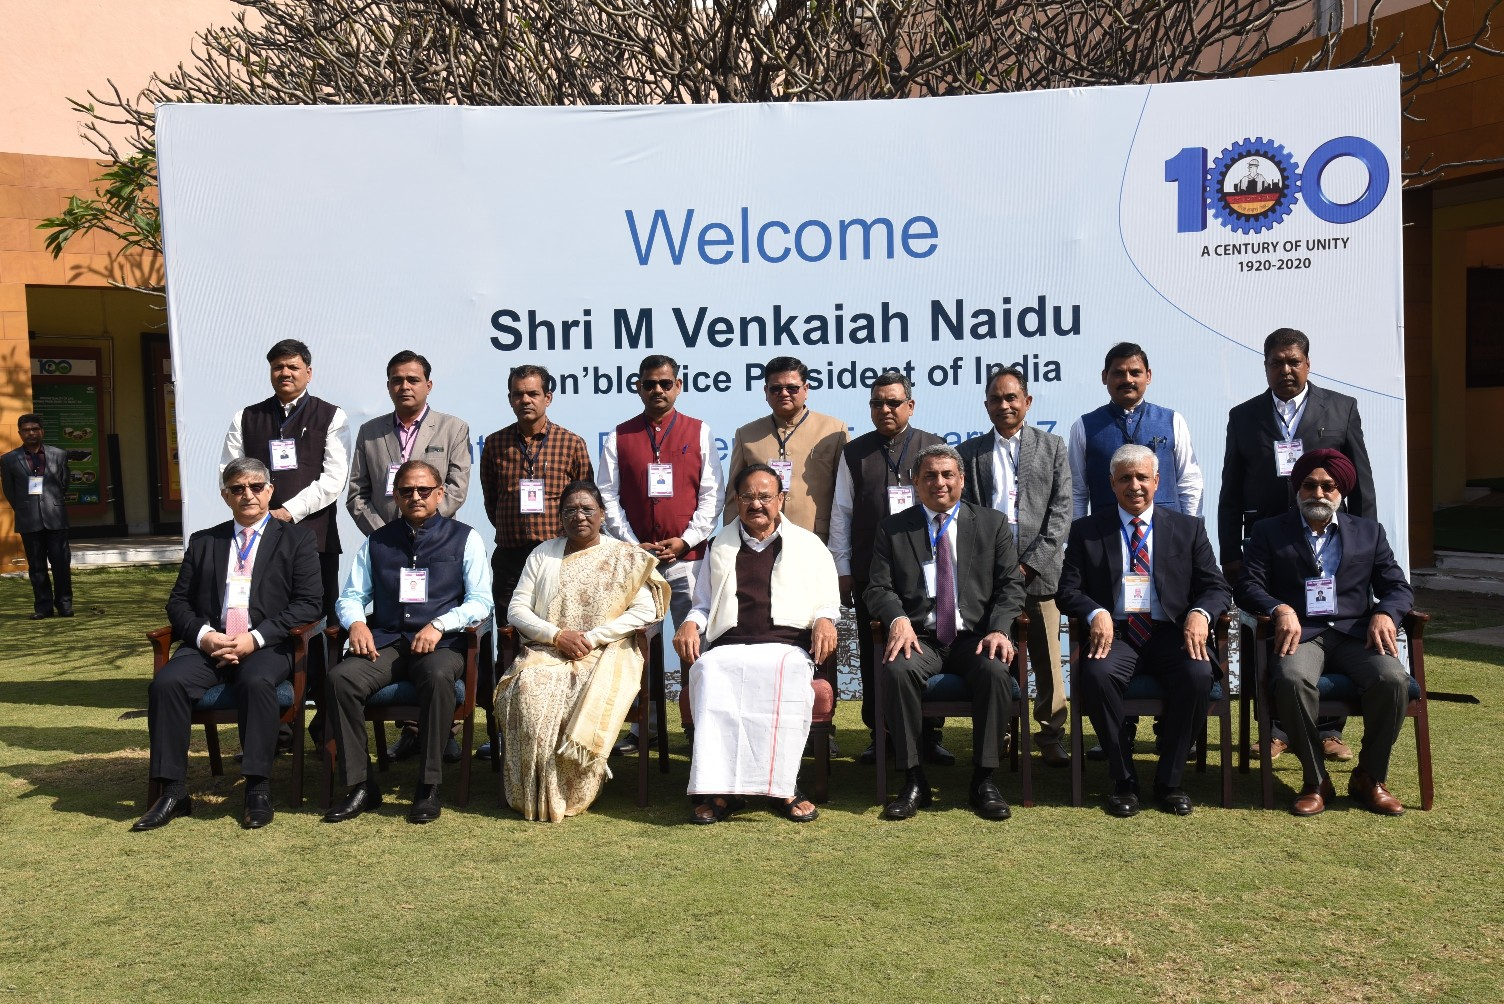 The Vice President, Shri M. Venkaiah Naidu with the office bearers of the Tate Steel Workers' Union at Center for Excellence, in Jamshedpur, on 17 February 2020.